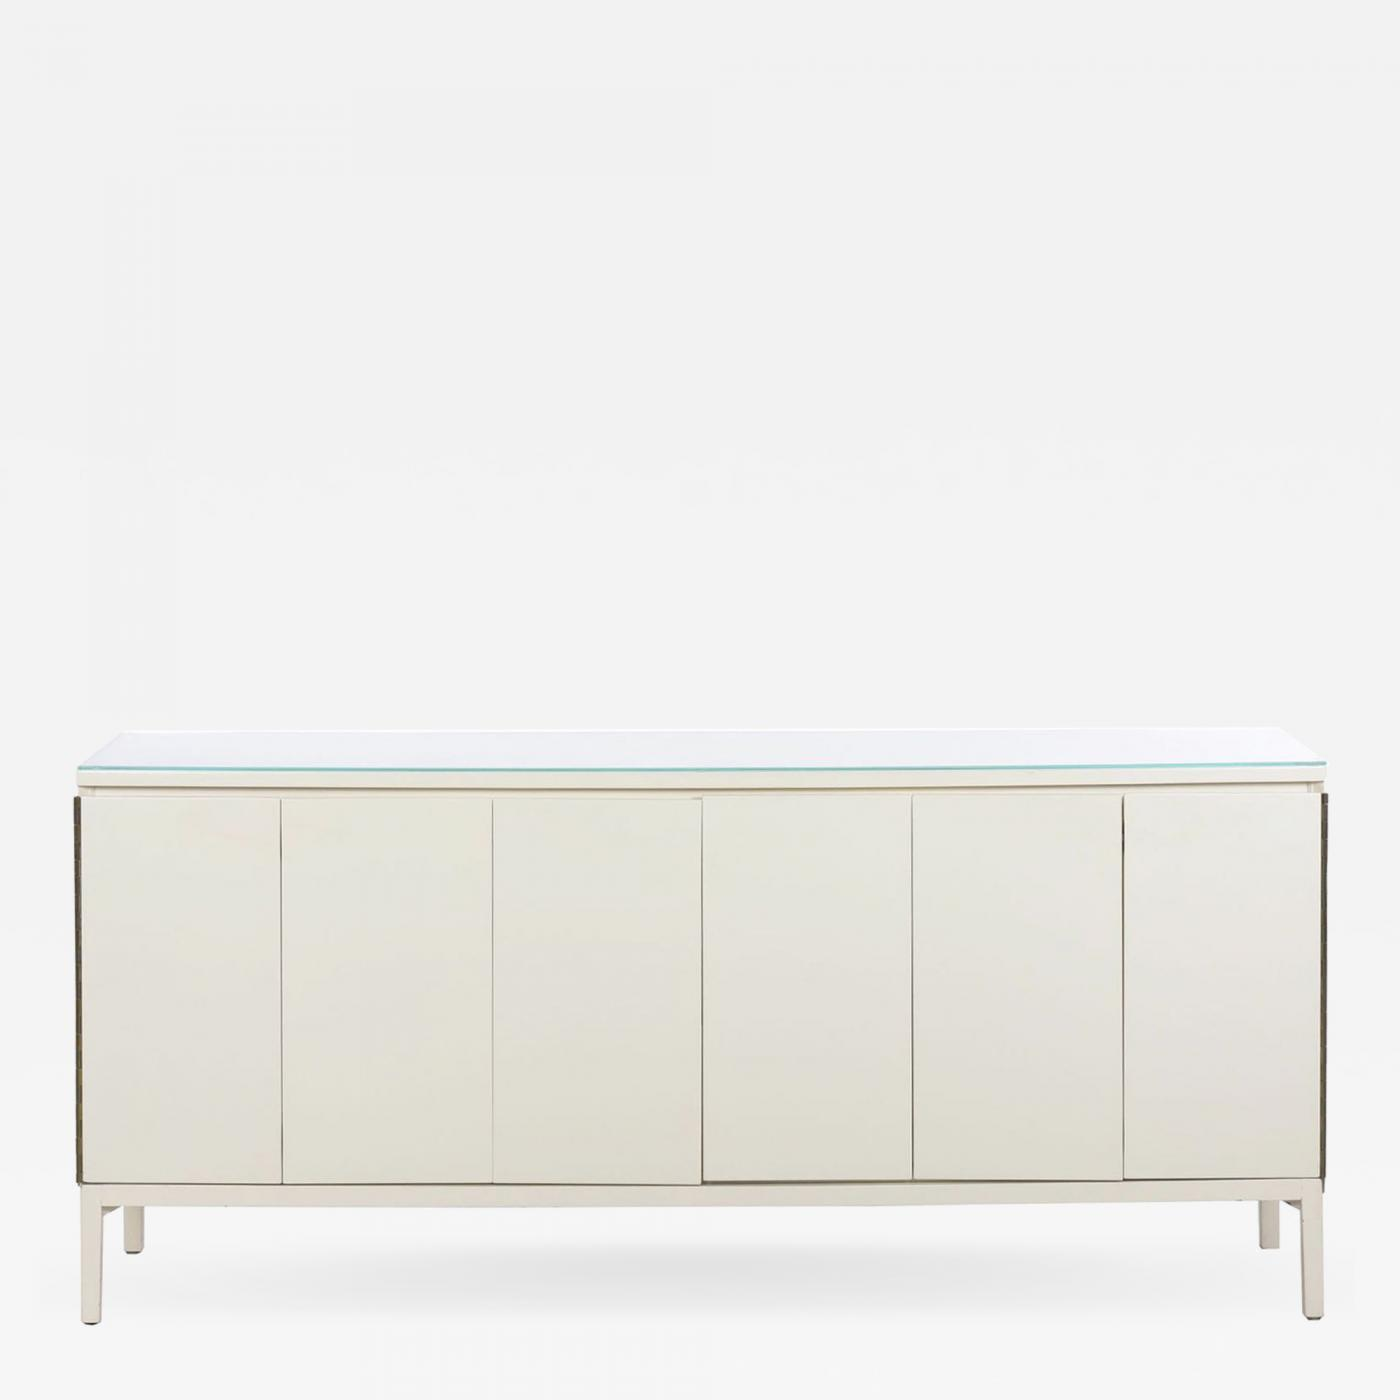 Modern Sideboards And Credenzas Laquer on modern sideboards and hutches, industrial modern credenzas, country style credenzas, post modern credenzas, modern sideboards with sliding door, made in usa modern credenzas, consoles and credenzas,